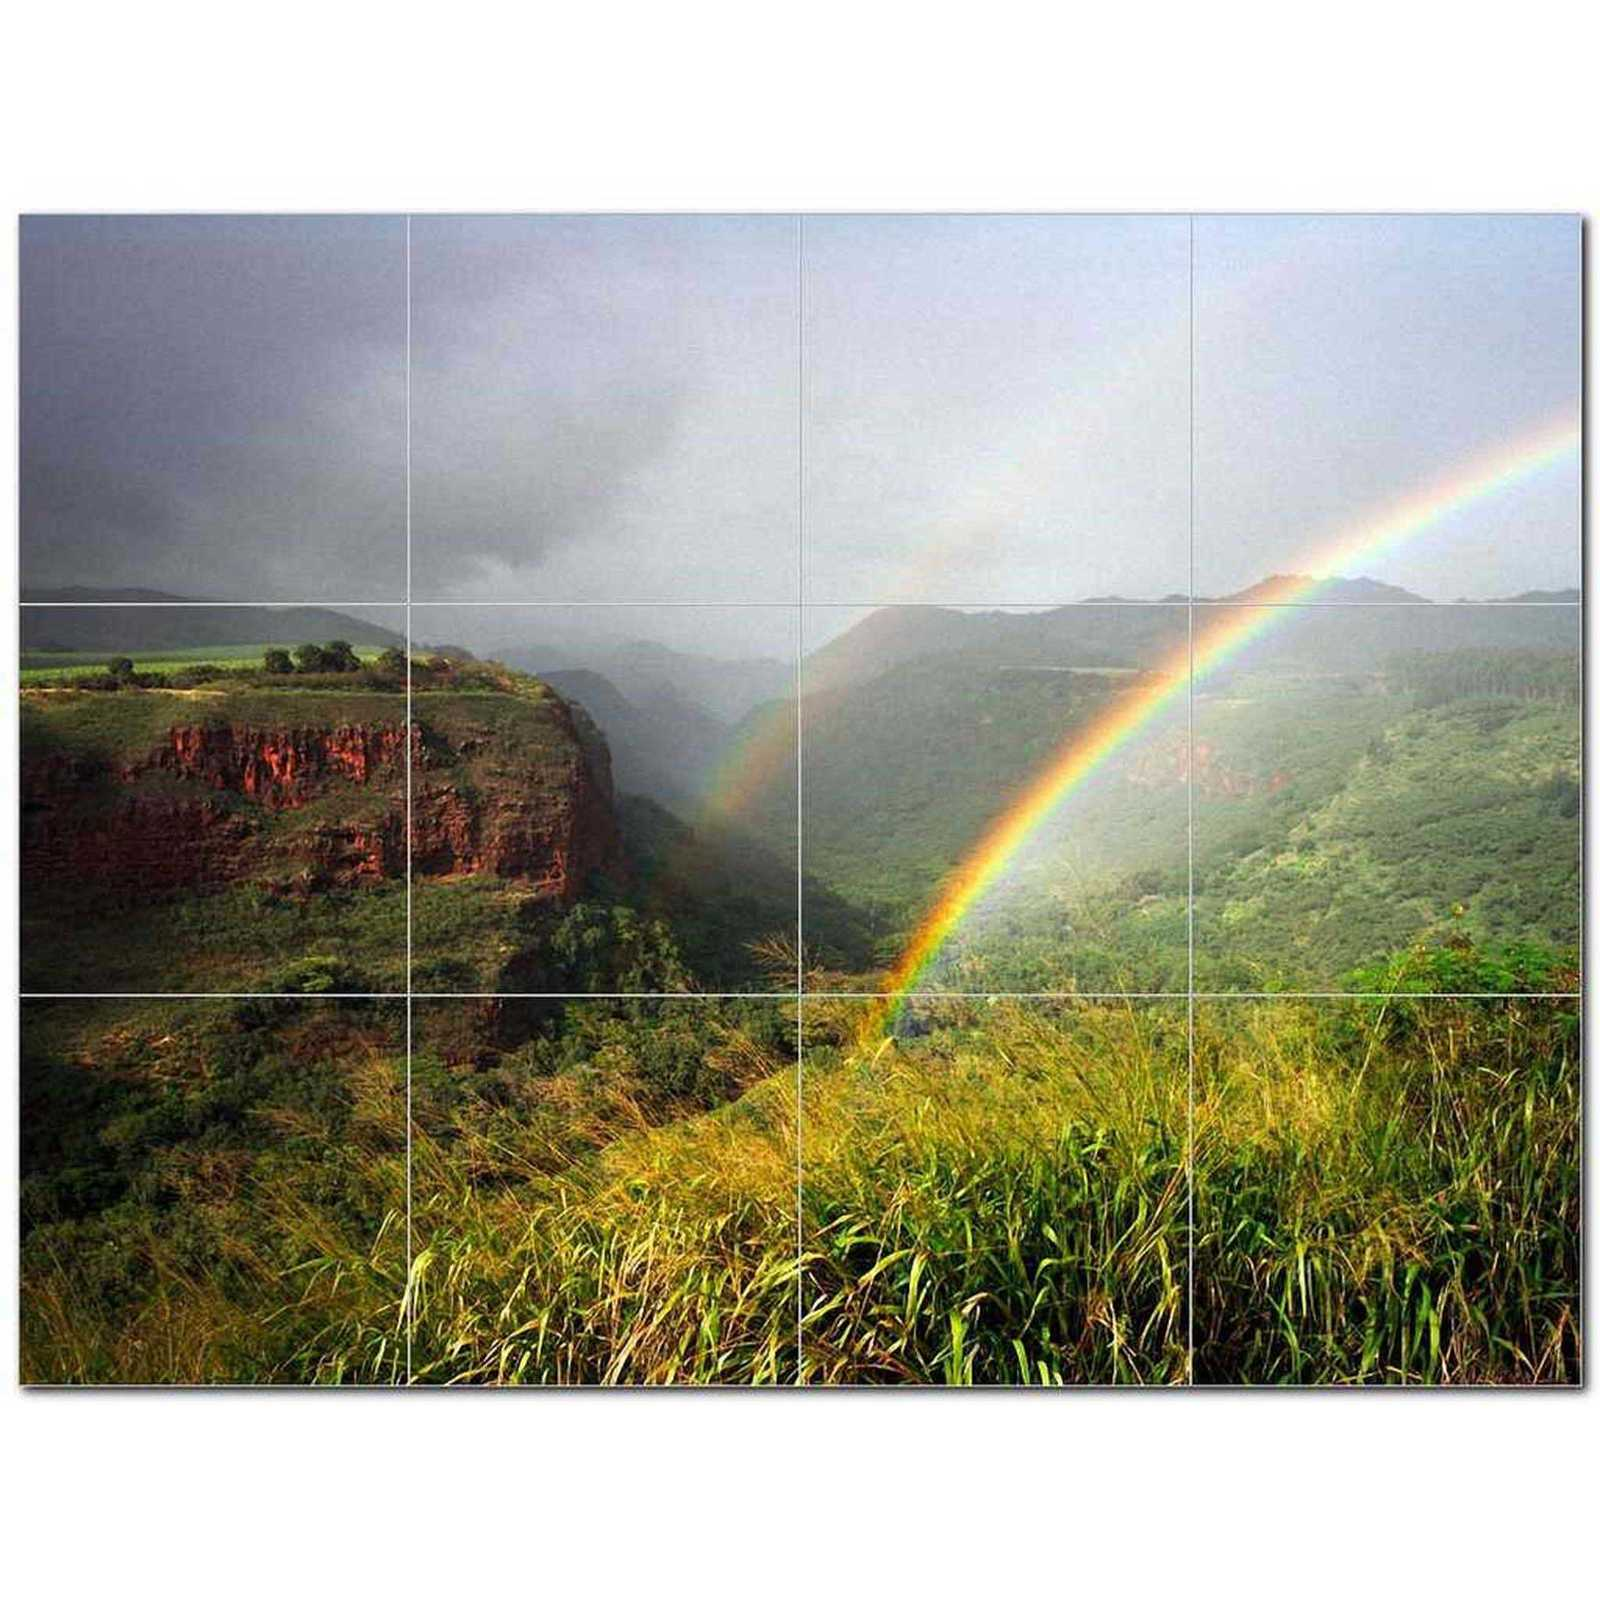 Primary image for Rainbow Photo Ceramic Tile Mural Kitchen Backsplash Bathroom Shower BAZ405693